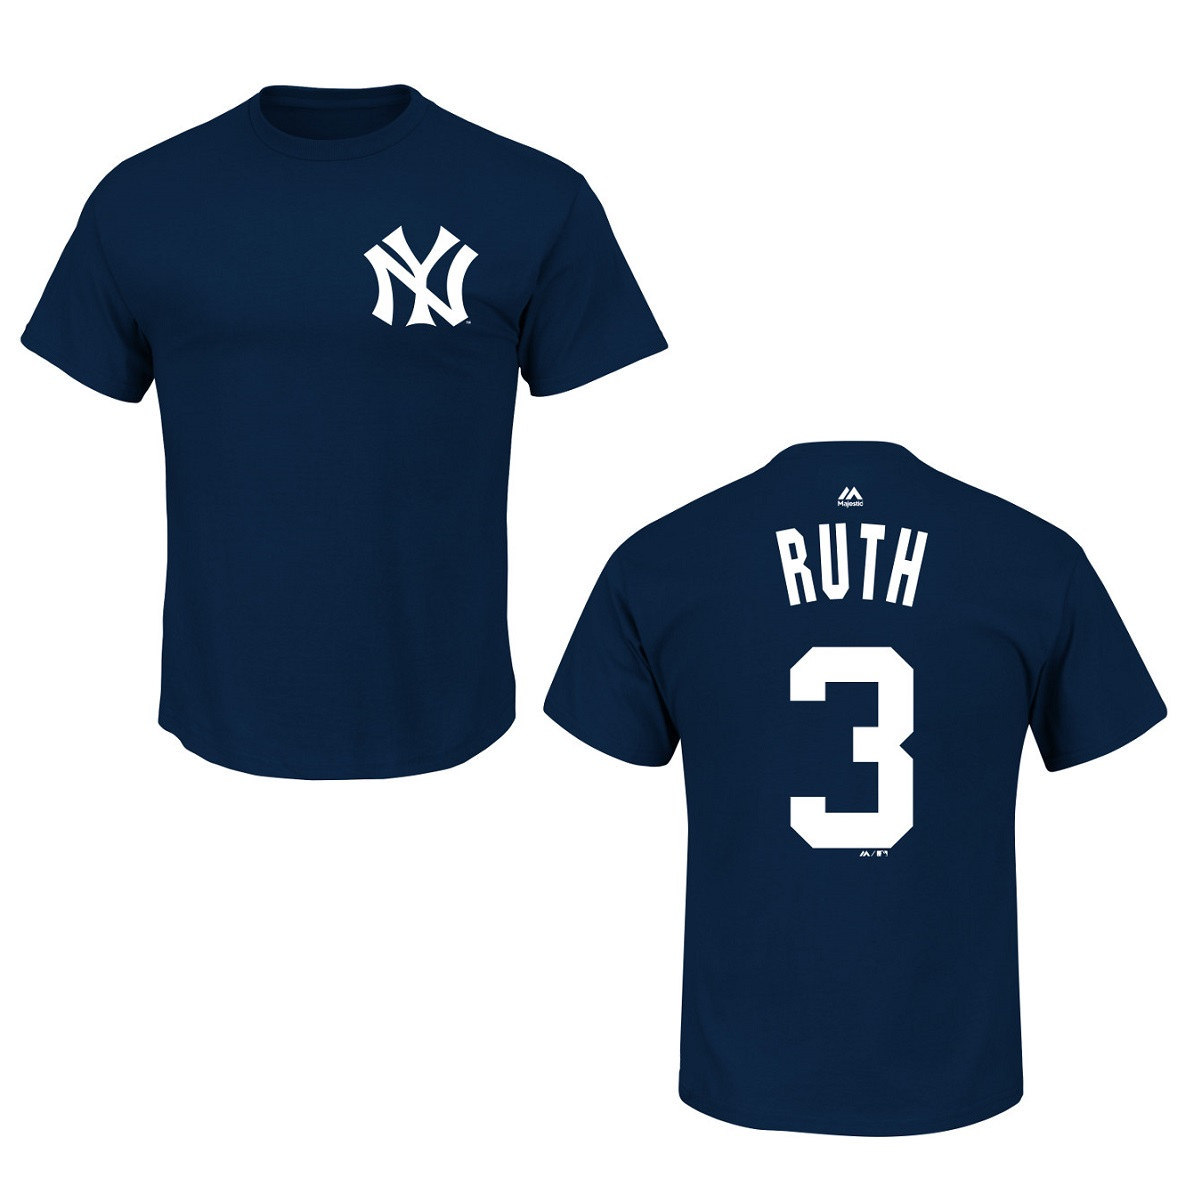 New York Yankees Babe Ruth Navy Blue Name and Number T-Shirt (M)